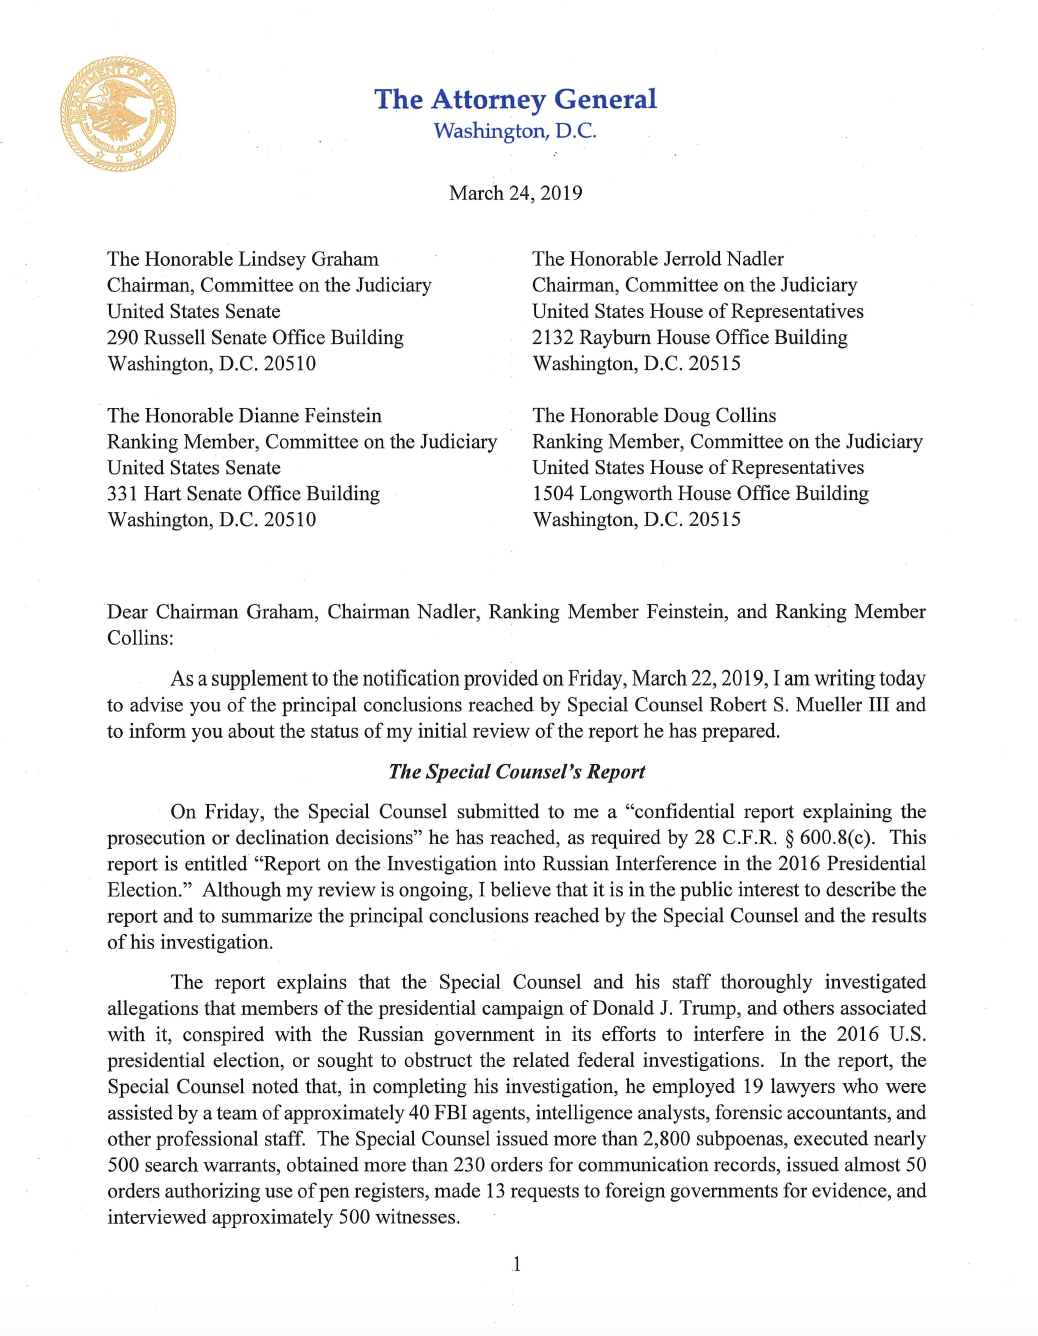 Page 1 of Attorney General William Barr's letter to Congress on Special Counsel Robert Mueller's report.